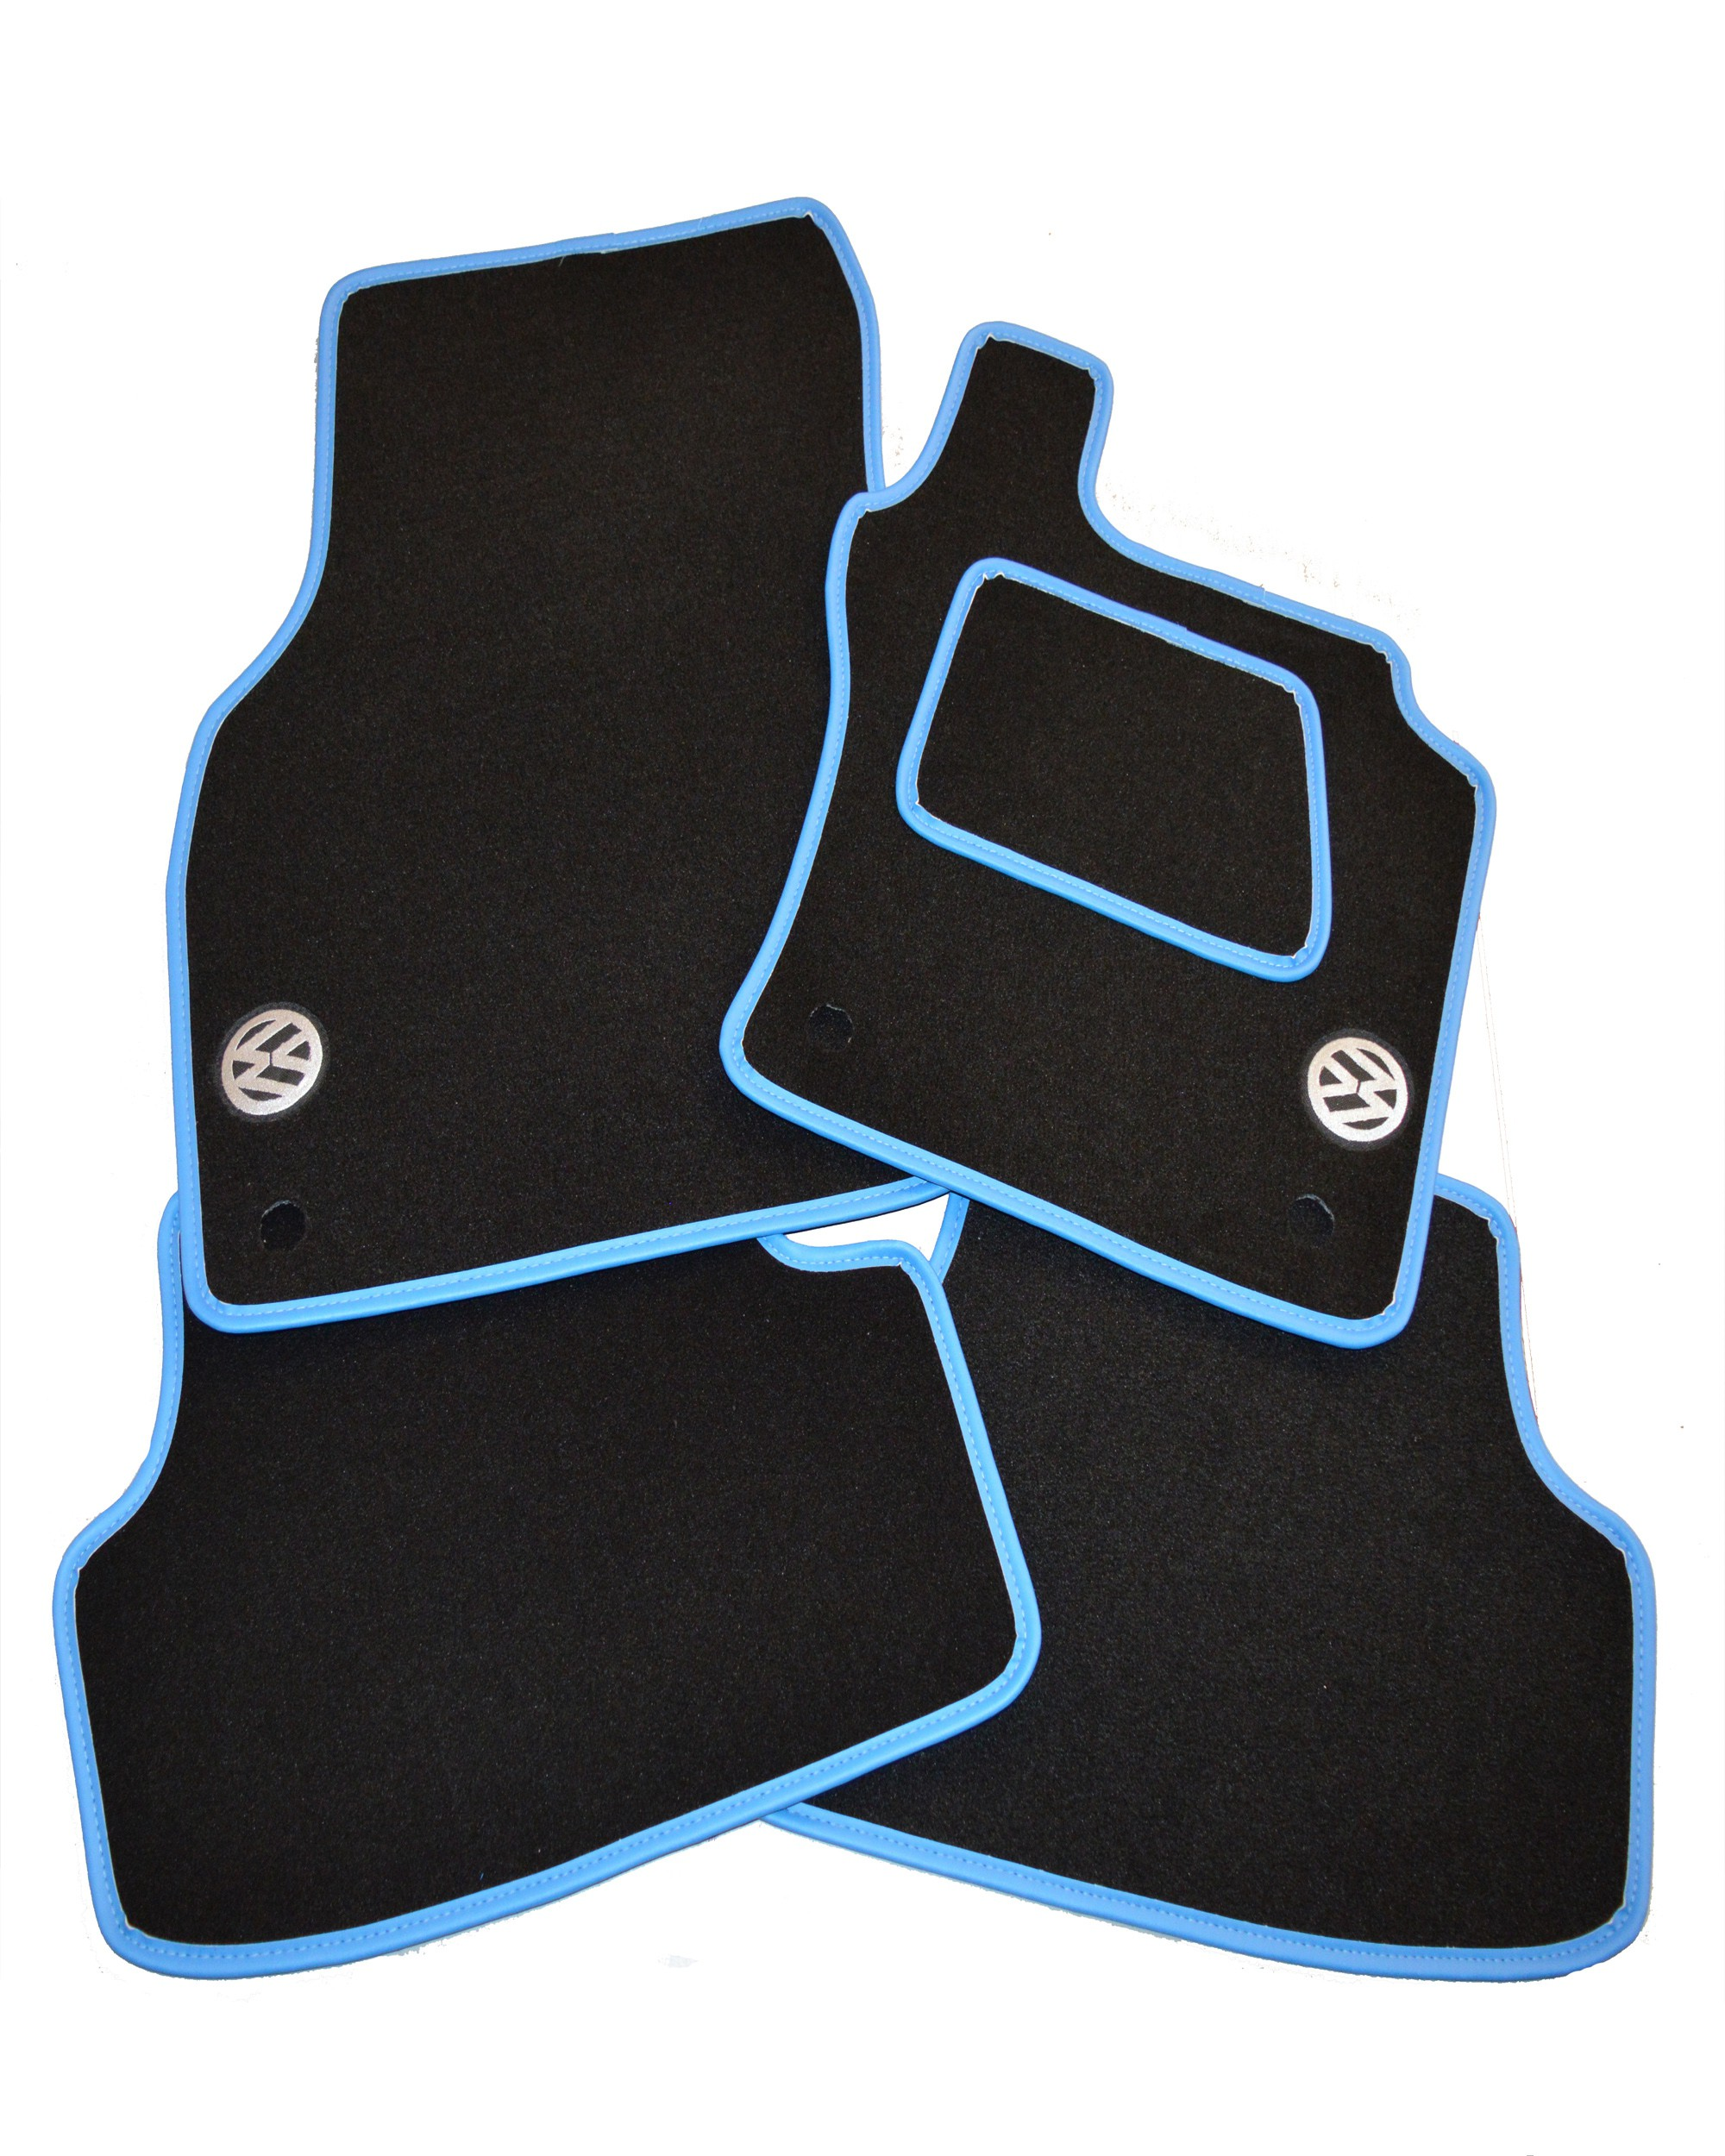 MK7 Golf car mats 1